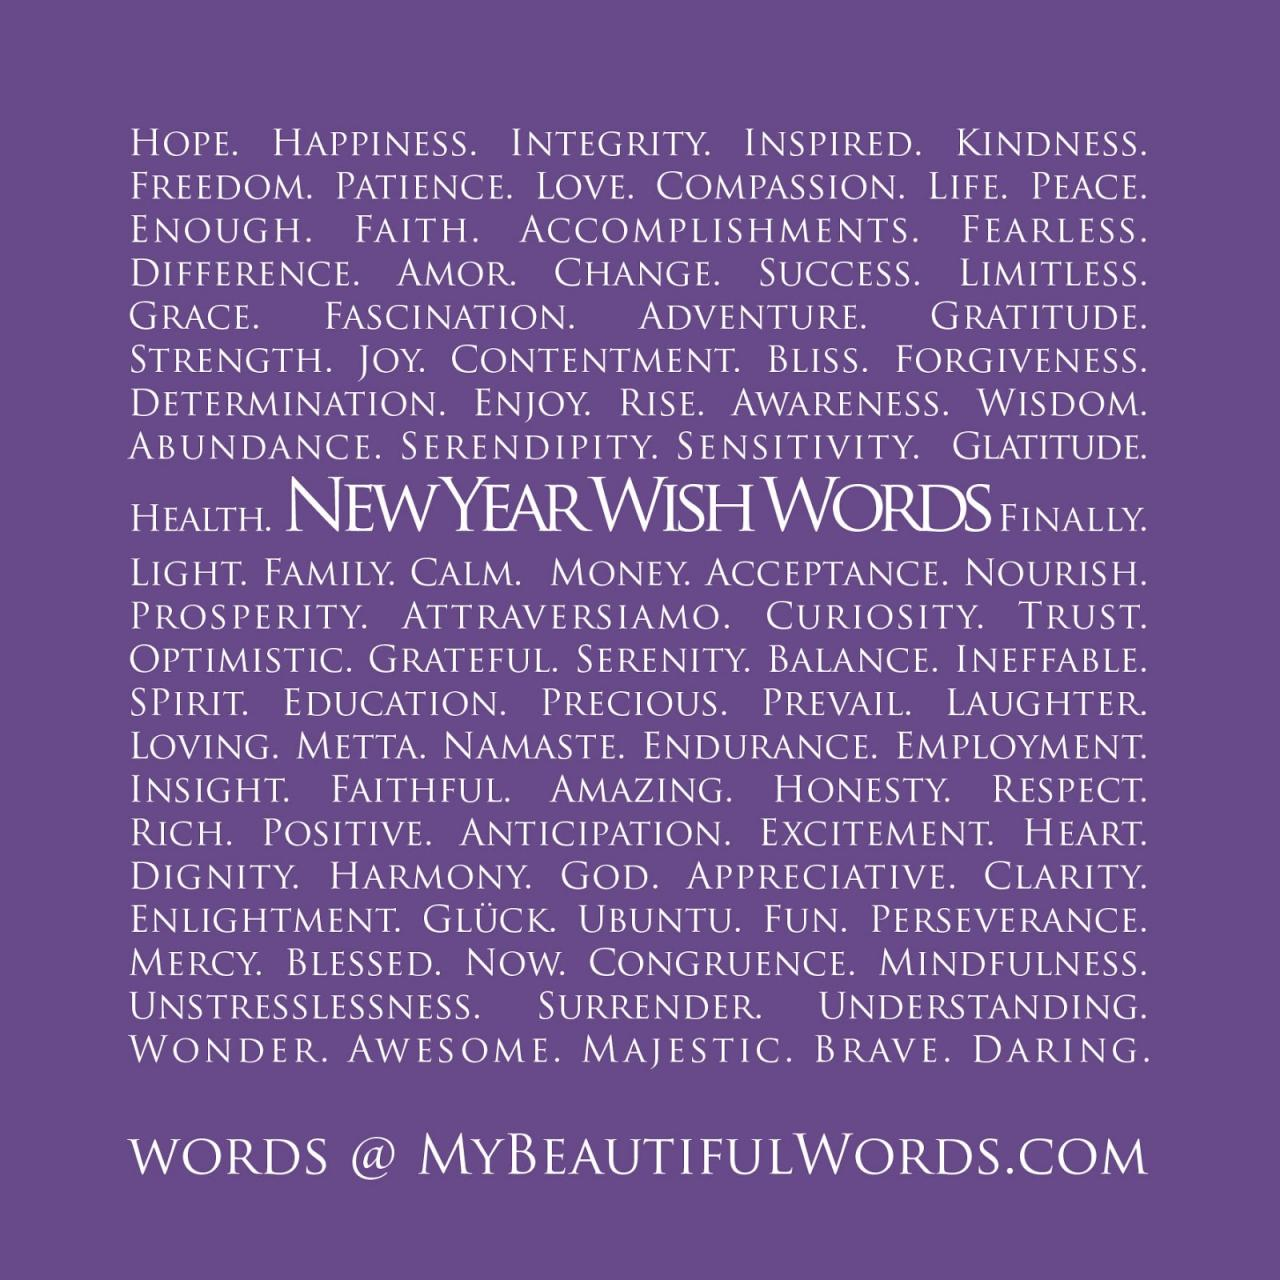 New Year Wish Words